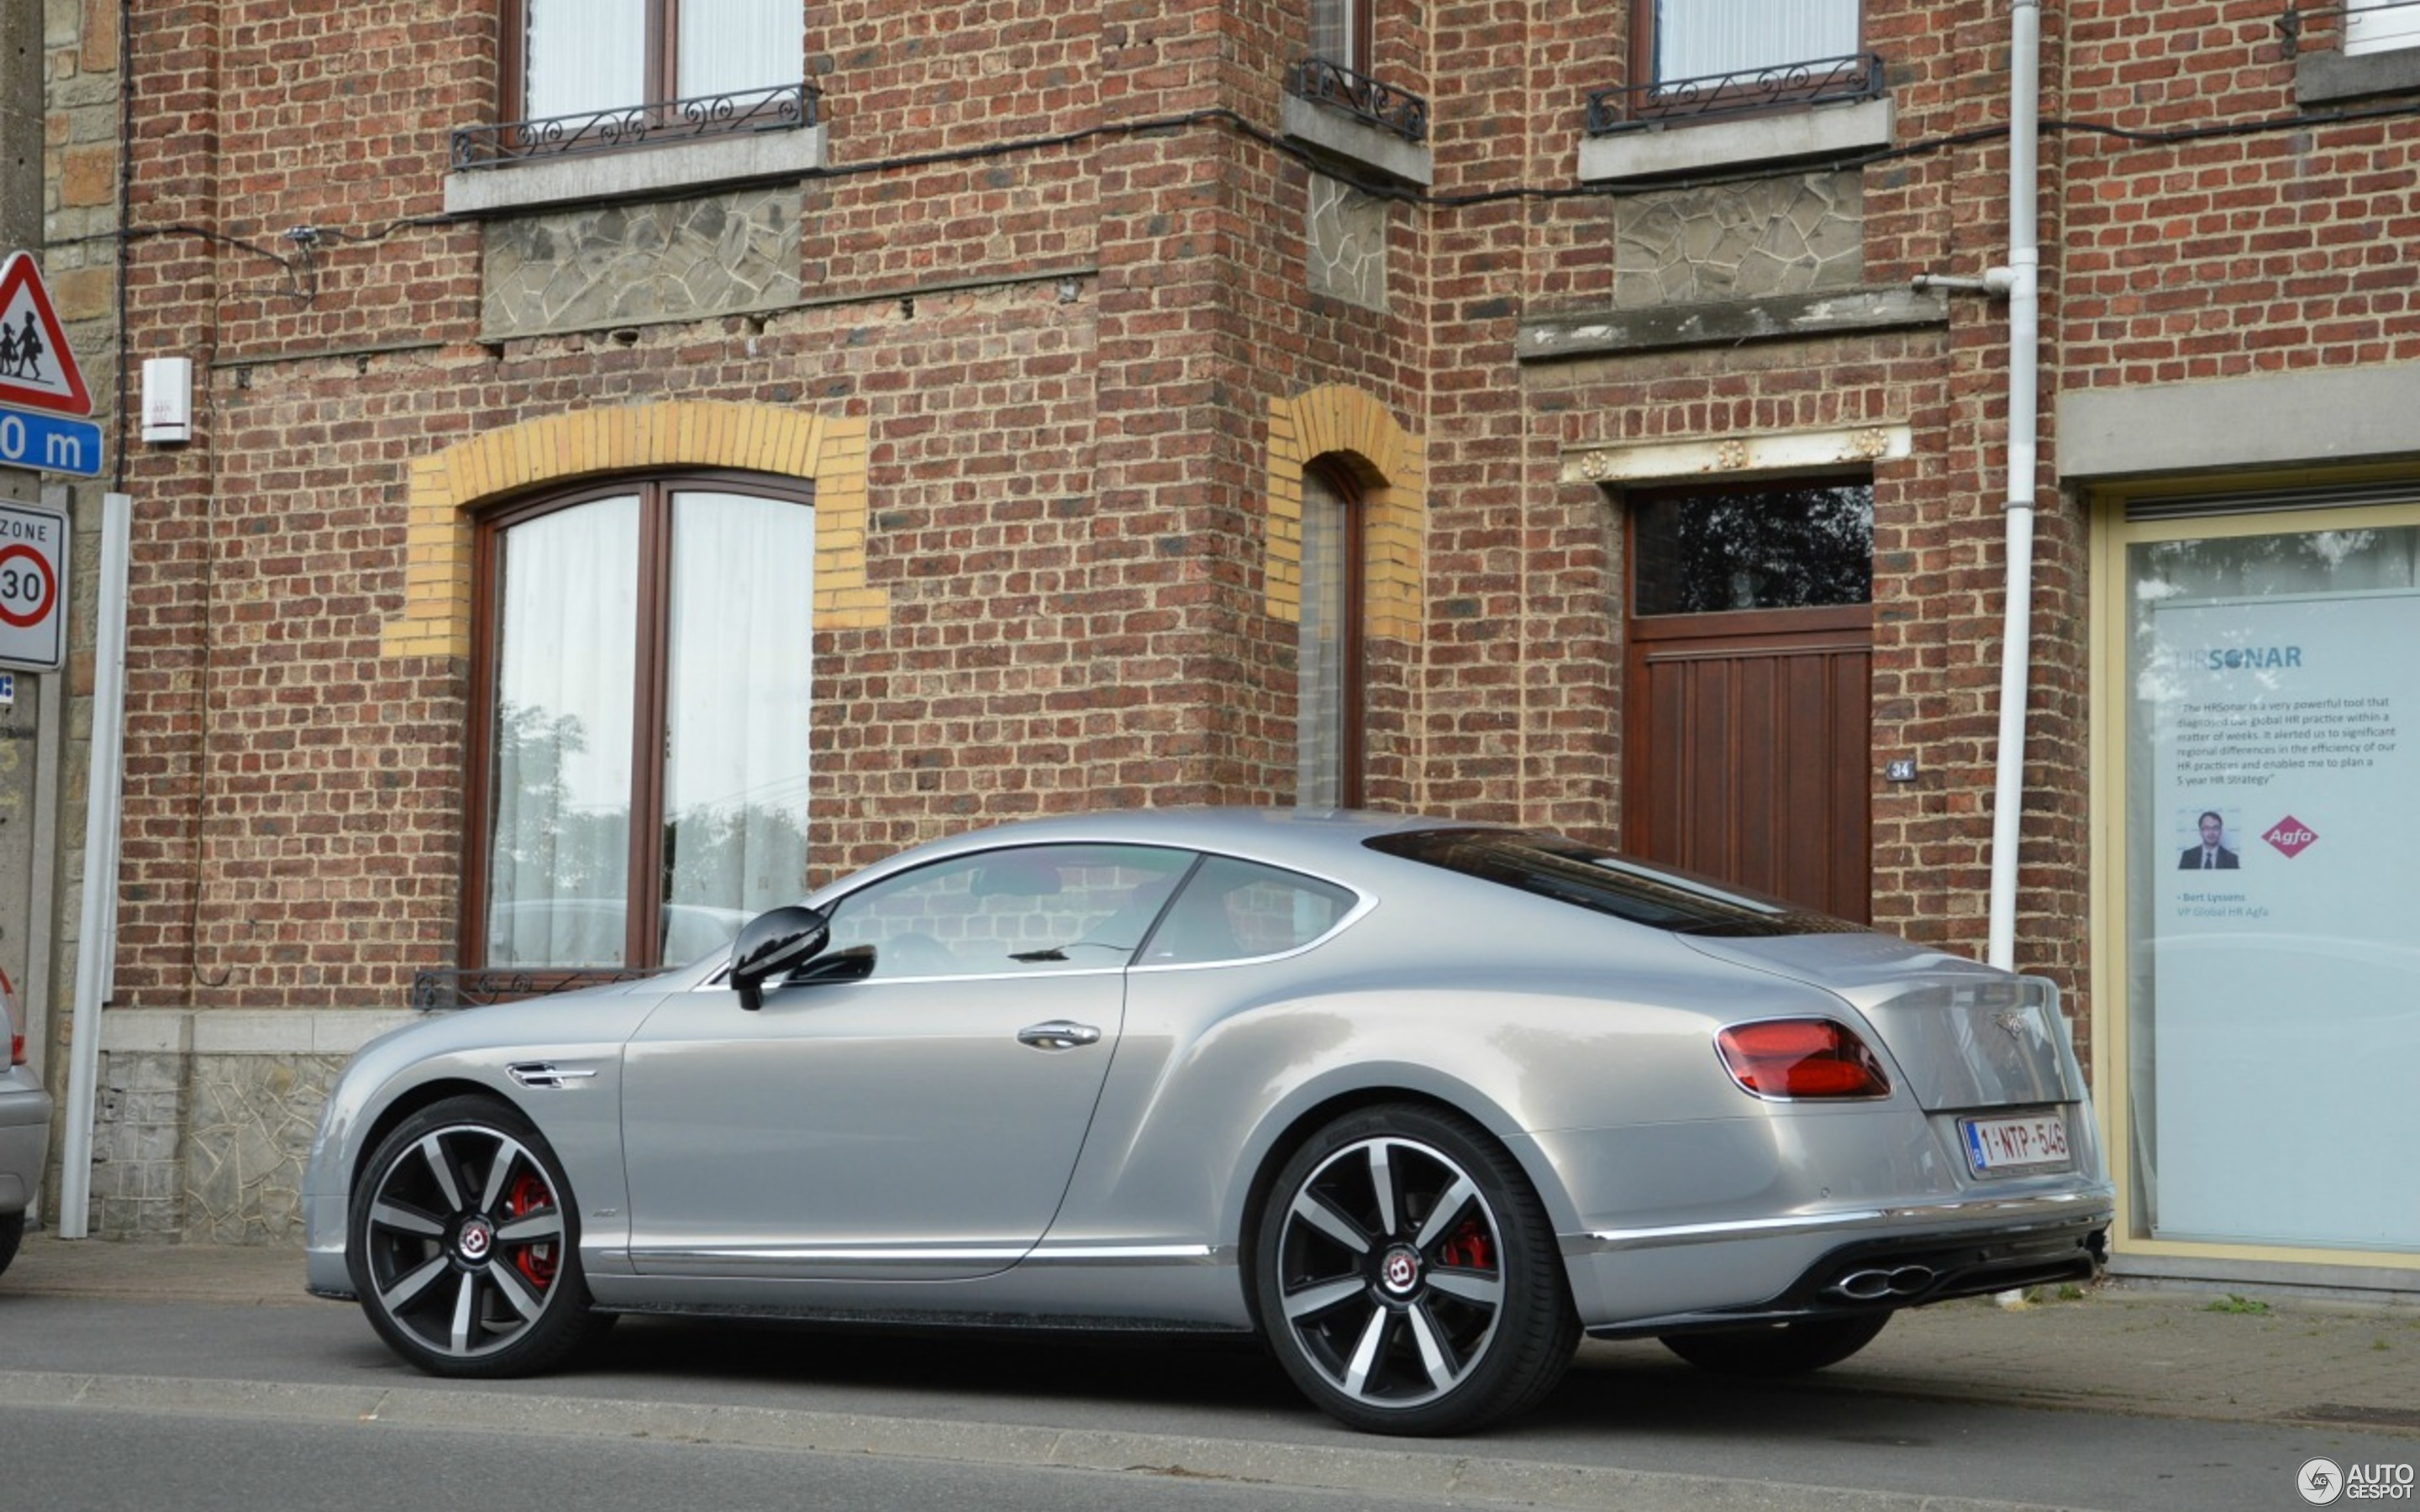 Bentley Continental GT V8 S 2016 27 June 2016 Autogespot